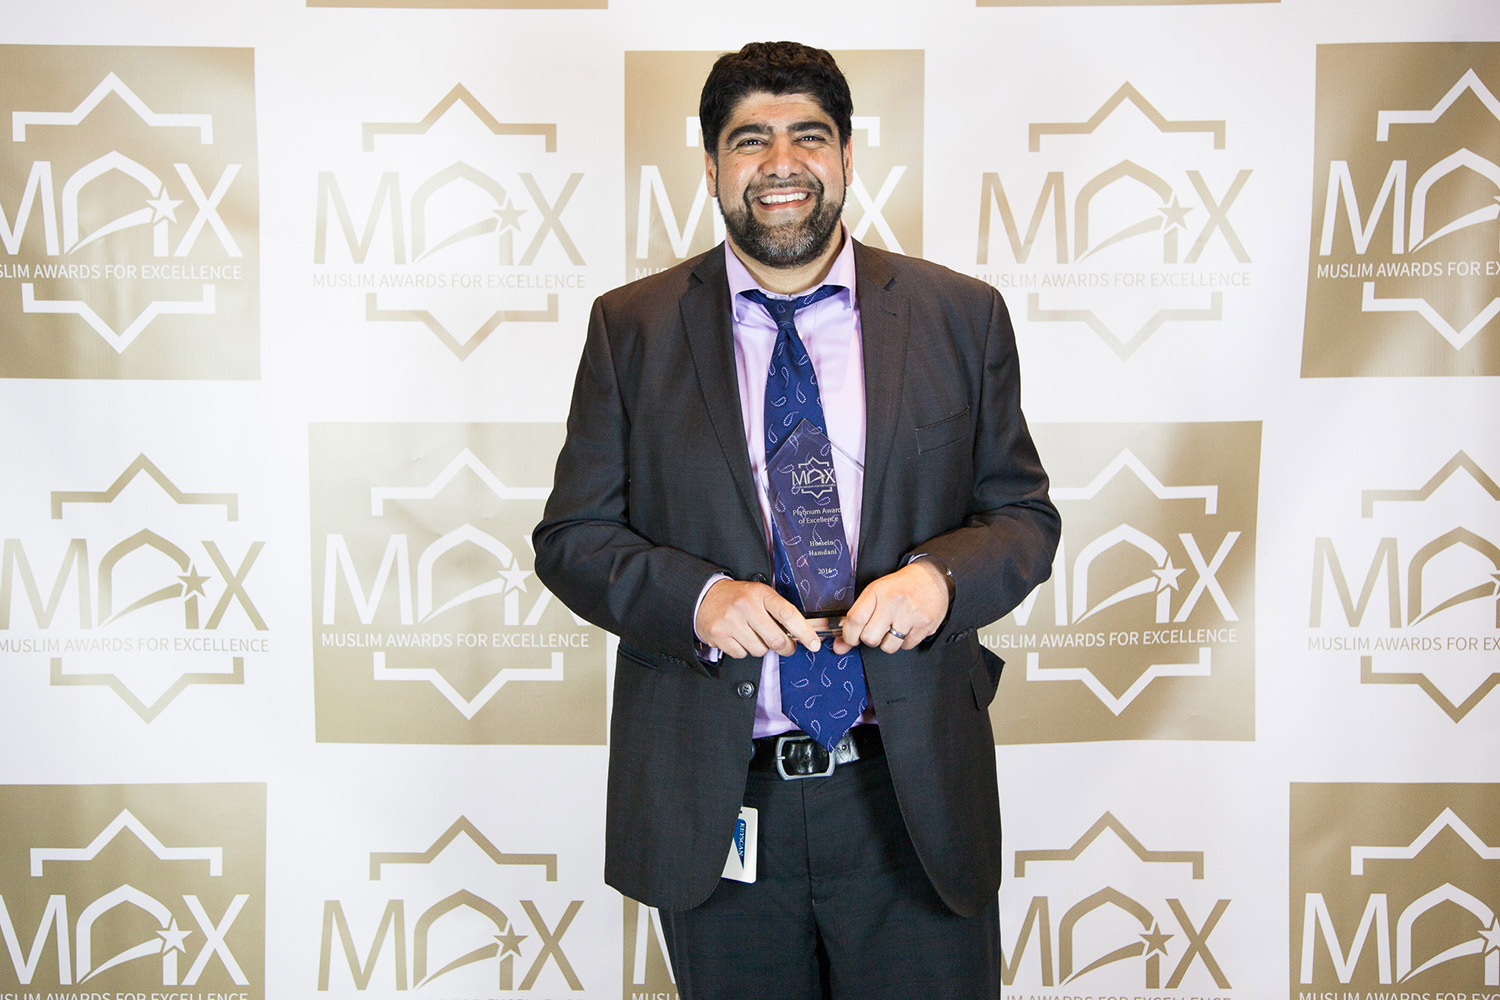 MAX Gala Recognizes Contributions of Muslim Canadians